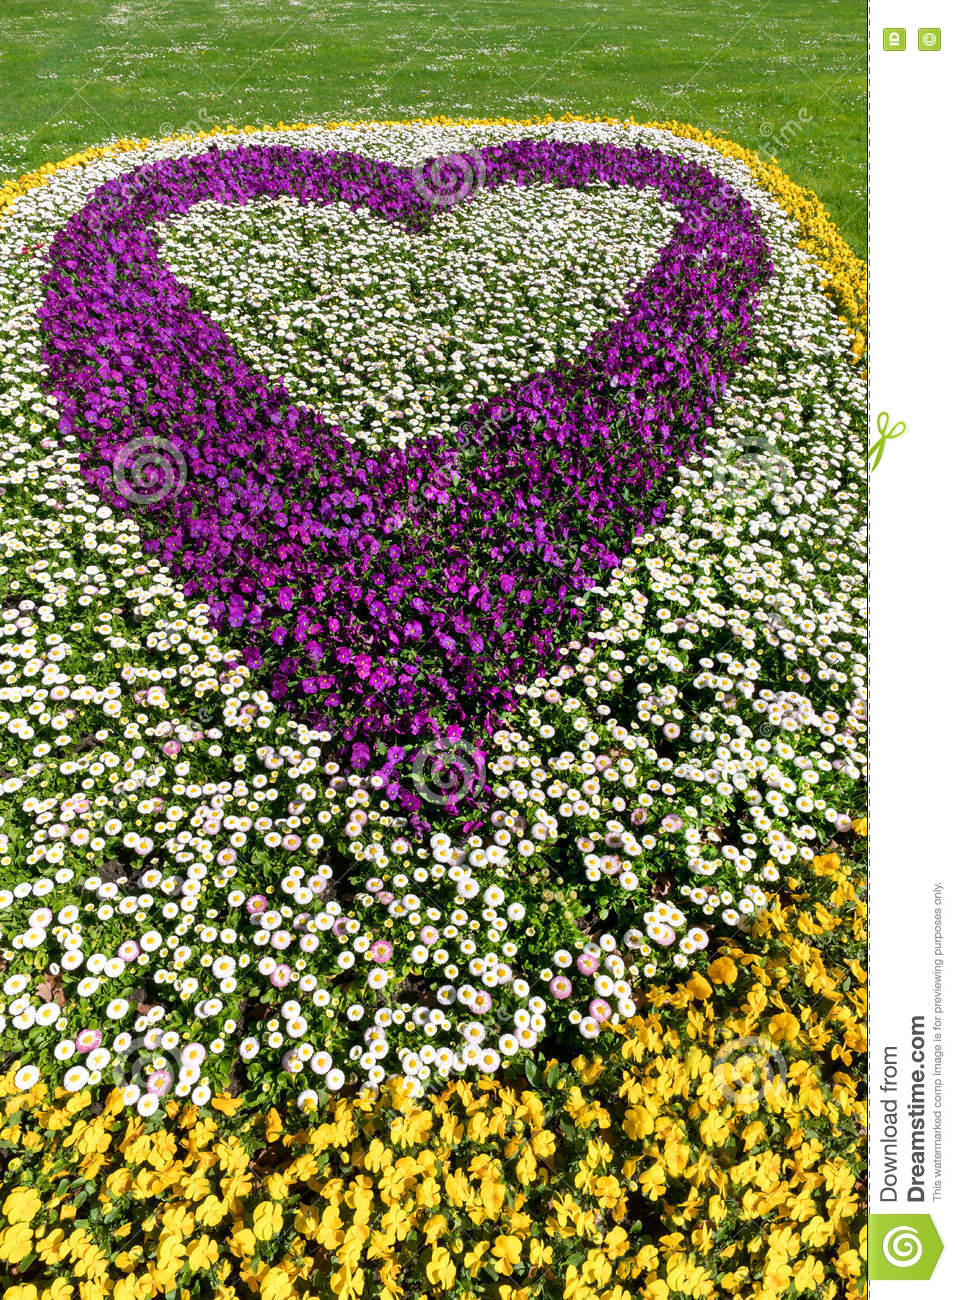 Flower bed in heart shape stock photo image 72767022 for Flower bed shapes designs